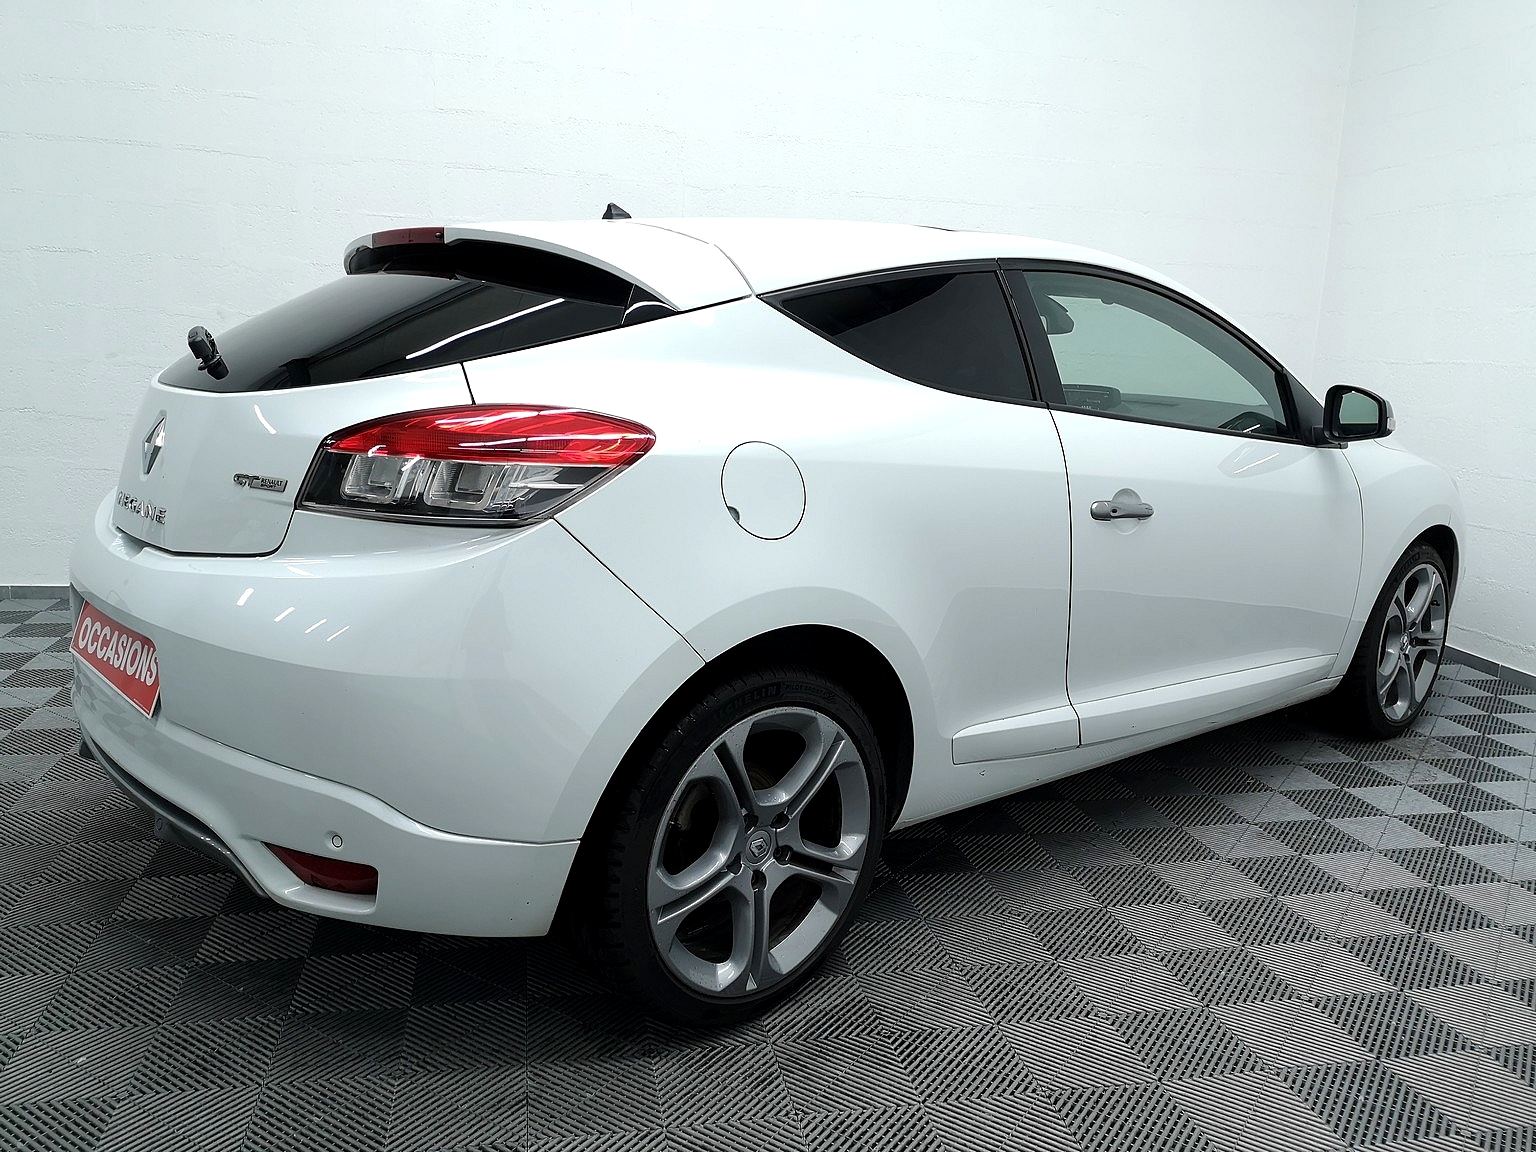 RENAULT MEGANE III COUPE 2015 à 9990 € - Photo n°4